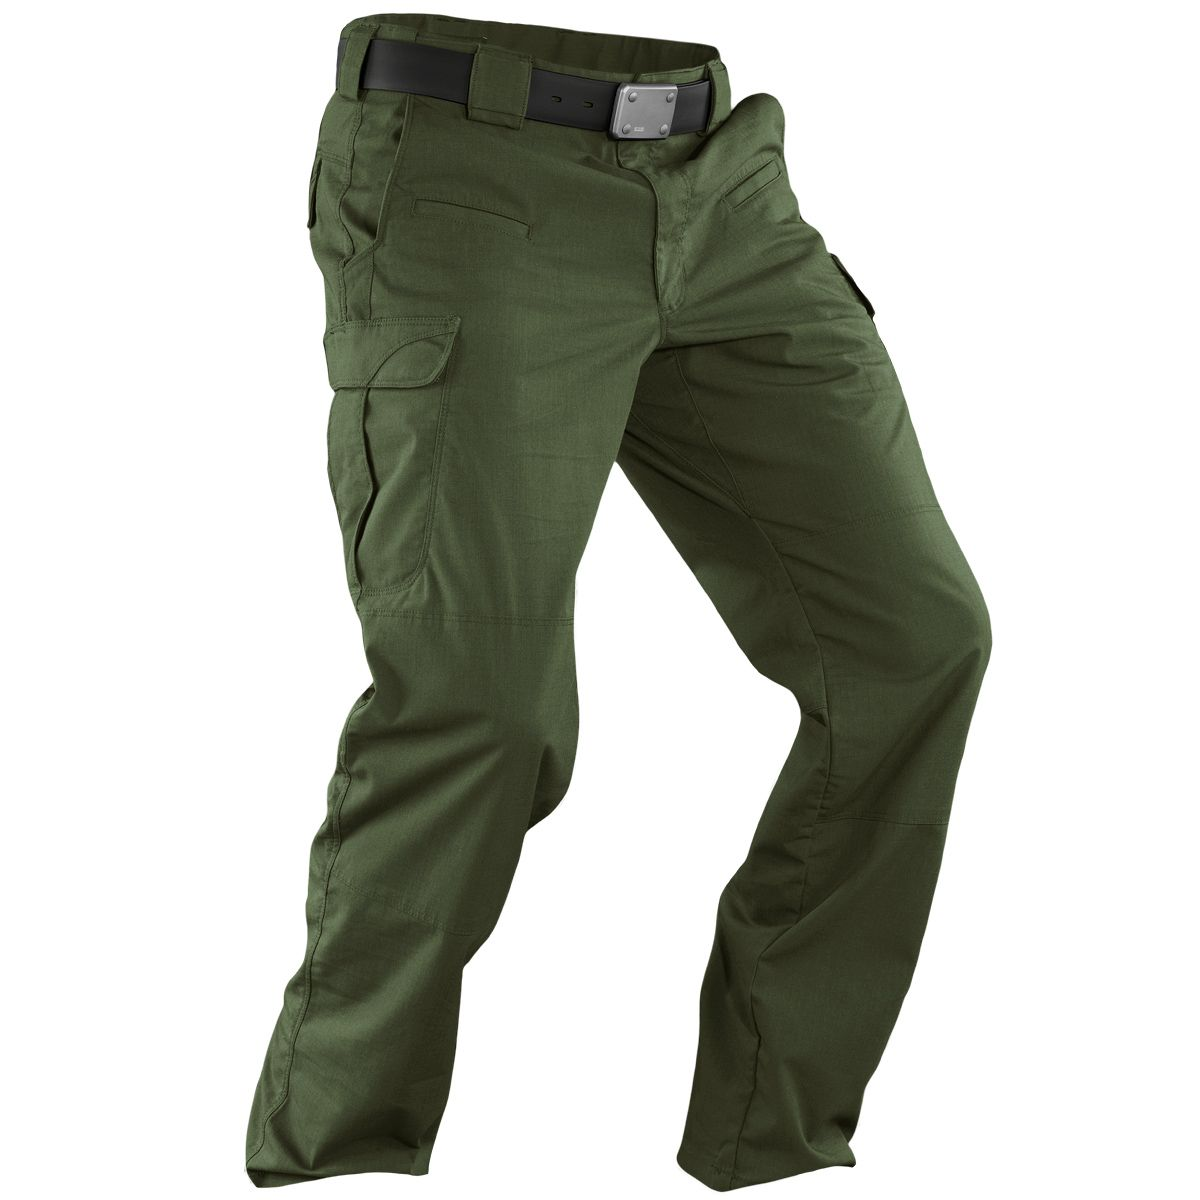 Details about 5.11 STRYKE COMBAT PANTS TACTICAL PATROL CARGOS MENS ...